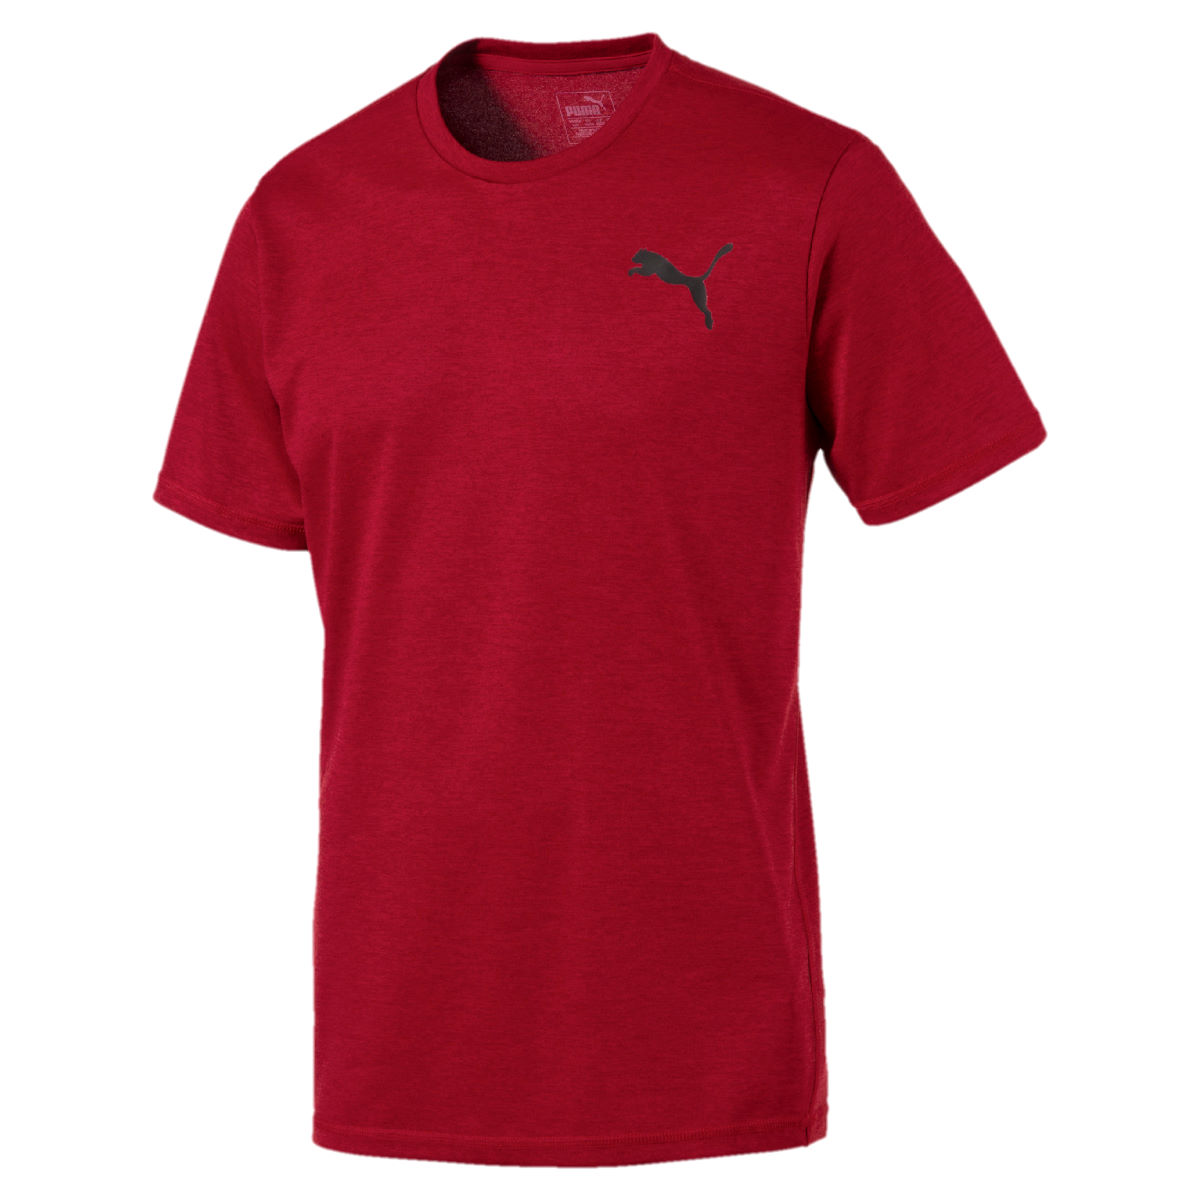 Maillot Puma Essential Puretech Heather Gym - L Red Dahlia Heather